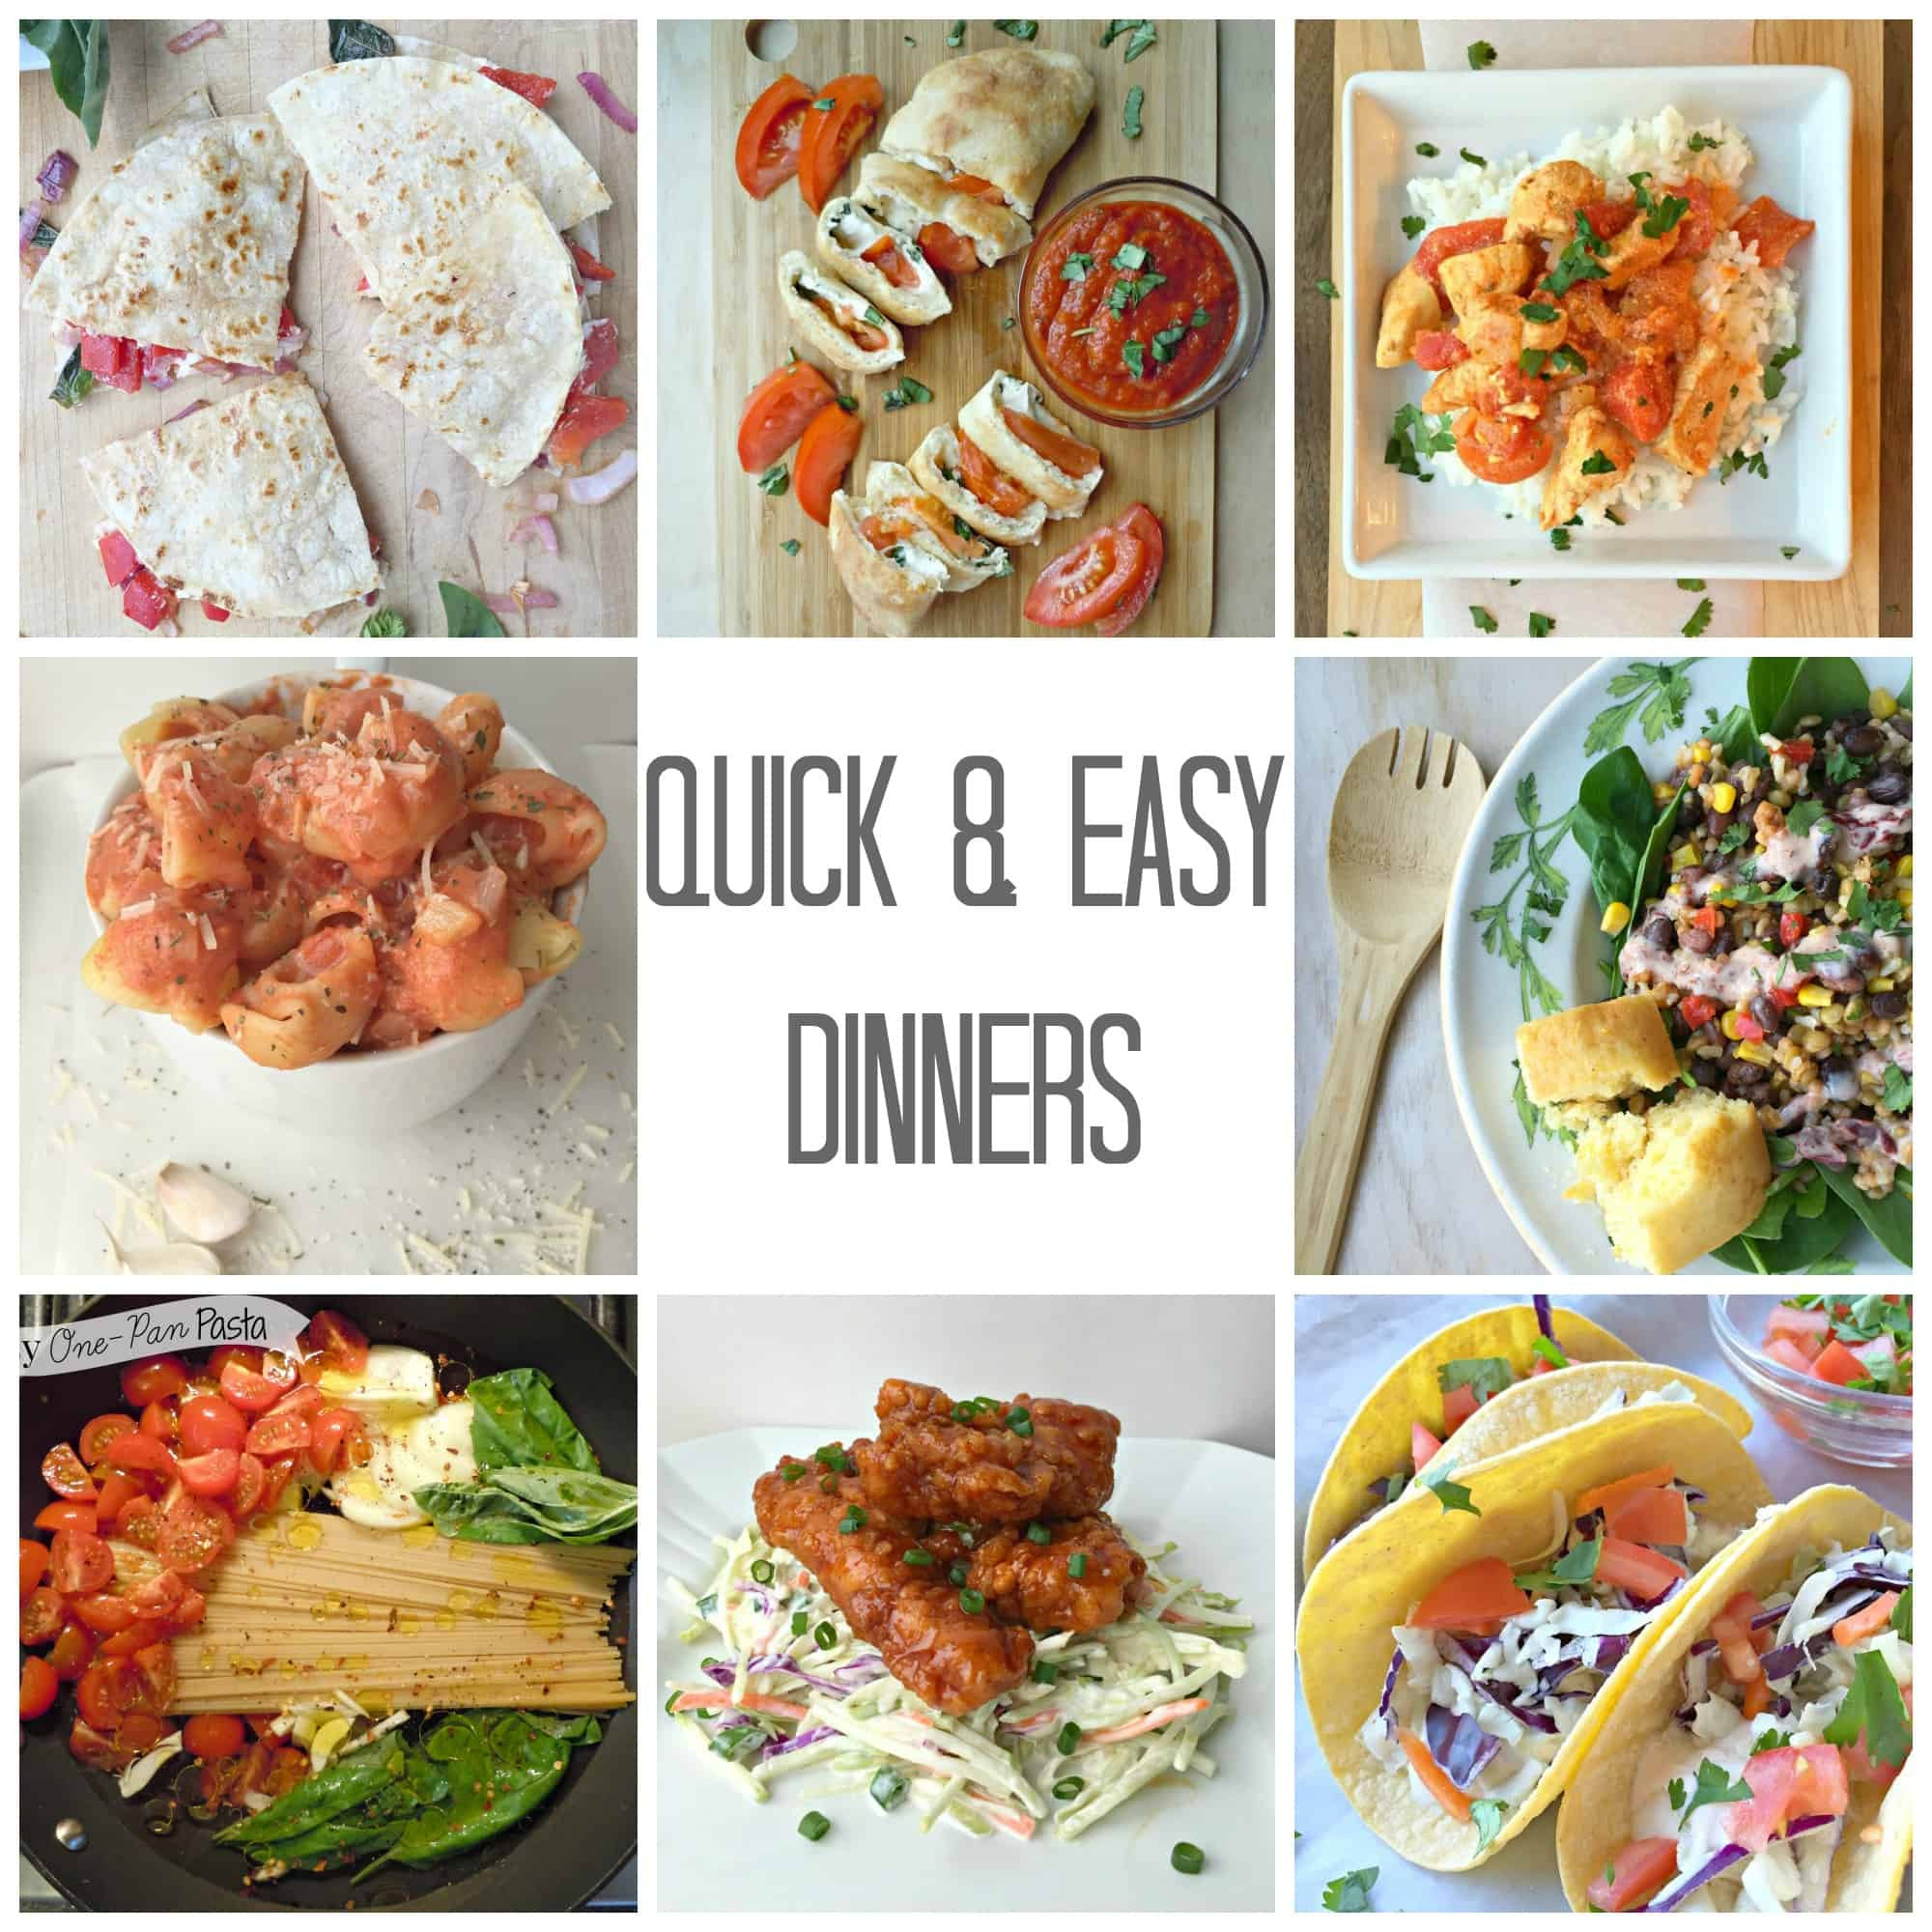 Simple Summer Dinners  Quick & Easy Summer Dinners Life a Little Brighter